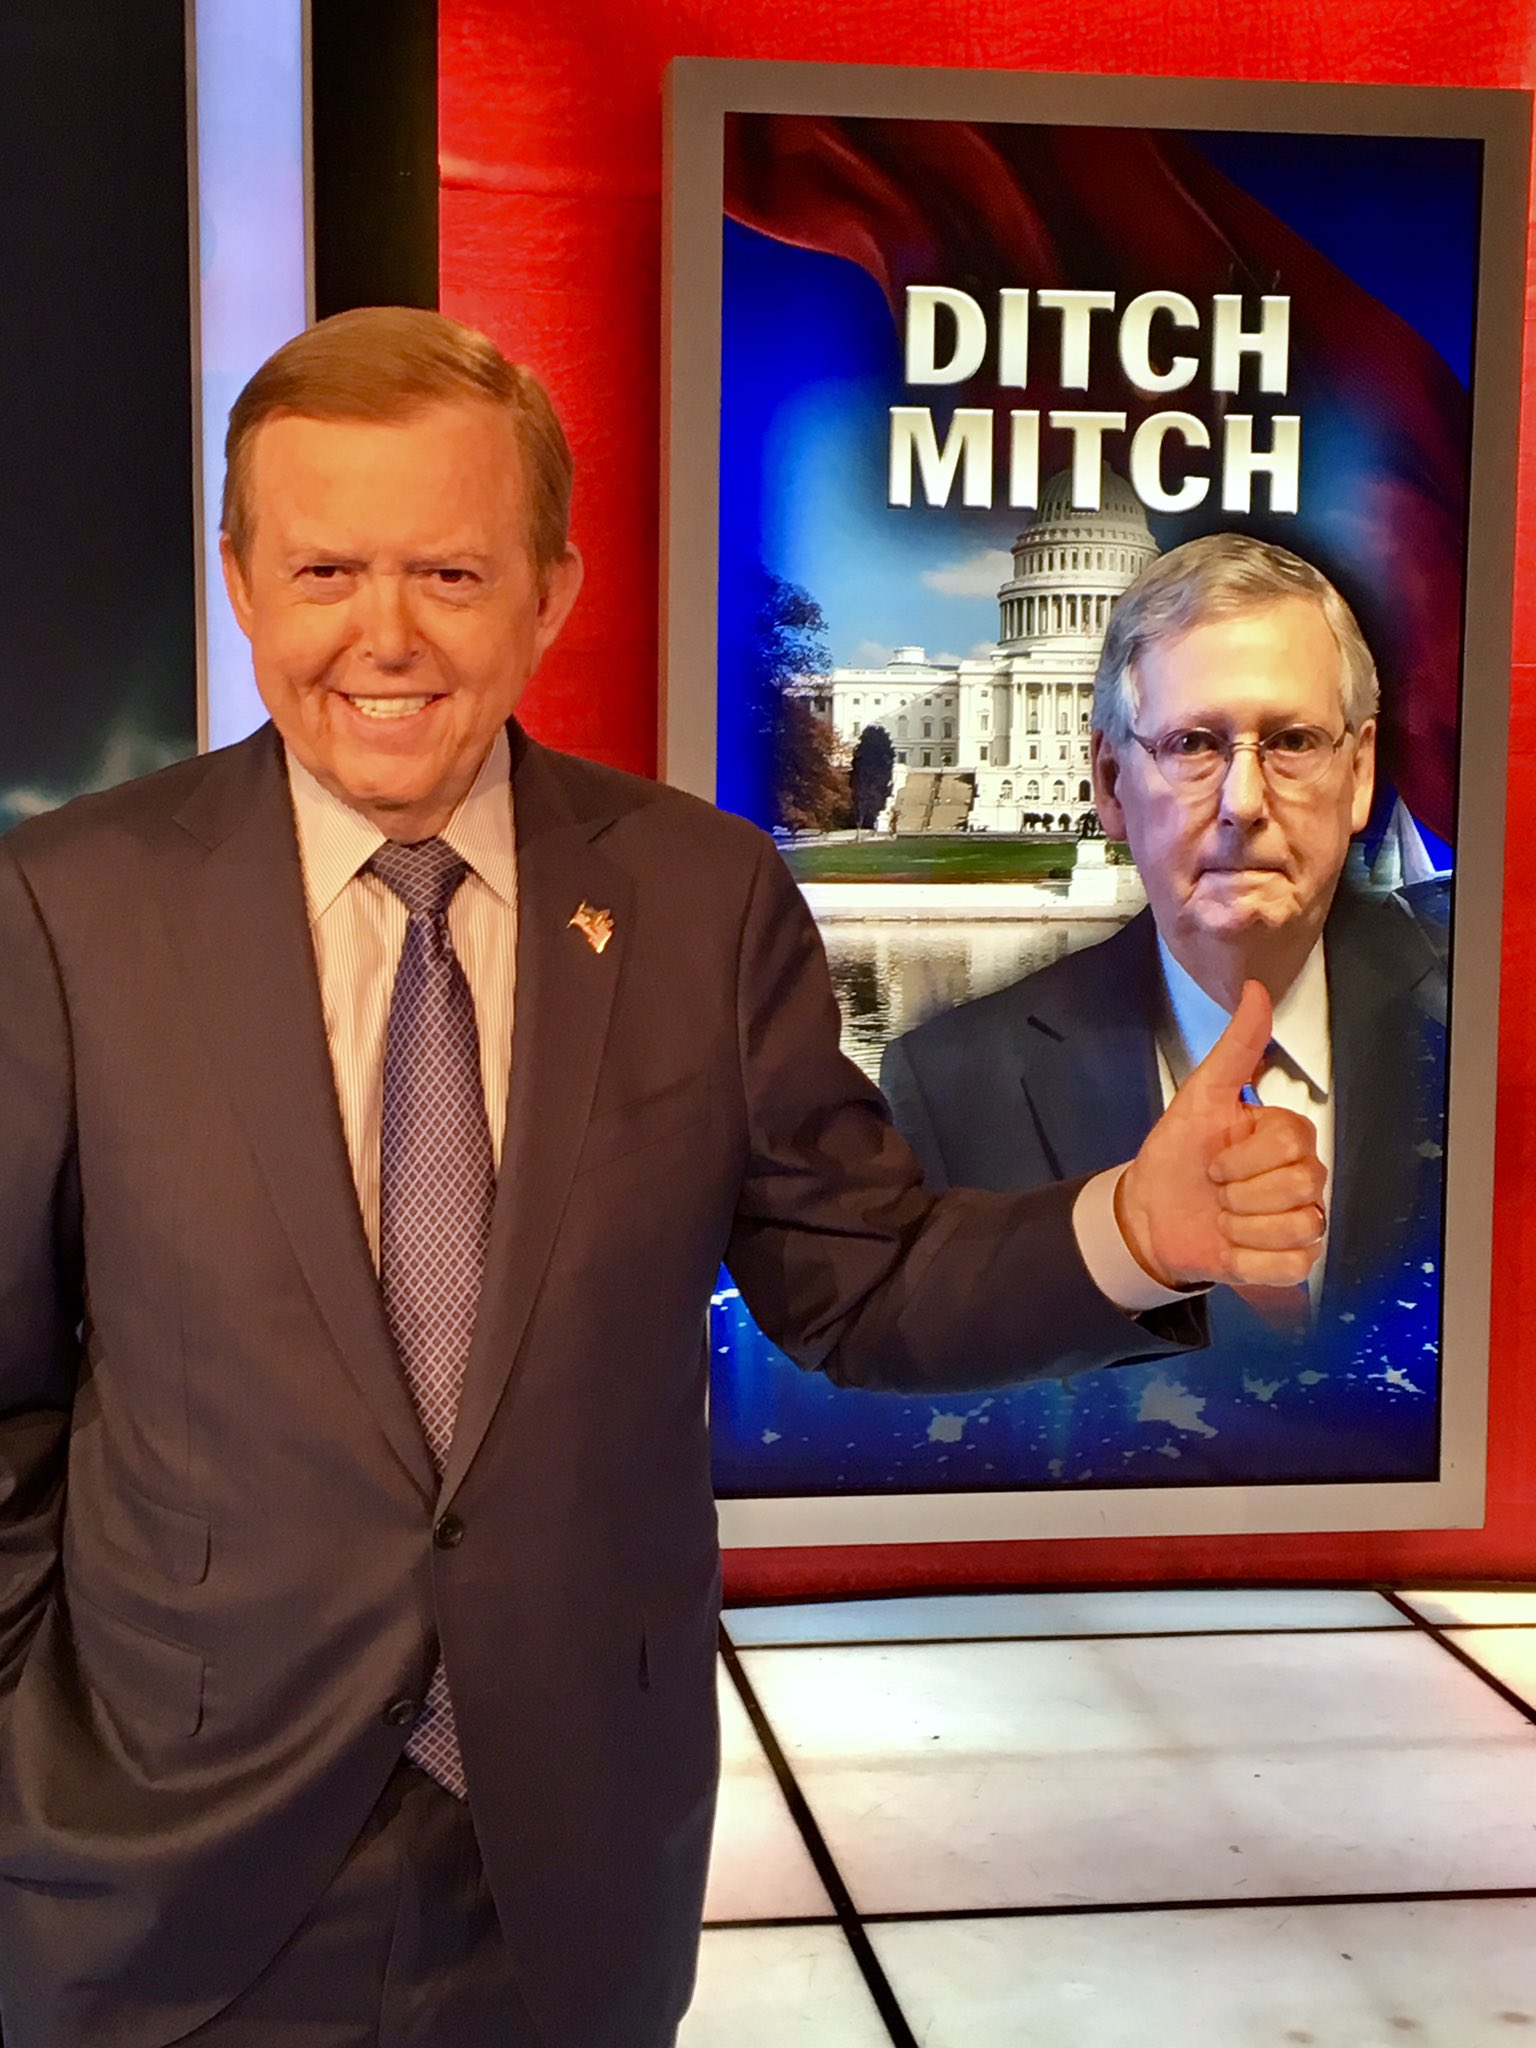 #DitchMitch- McConnell committing political suicide for failing to uphold @POTUS' America-First Agenda! #MAGA   https://t.co/6RgK0pJYyT